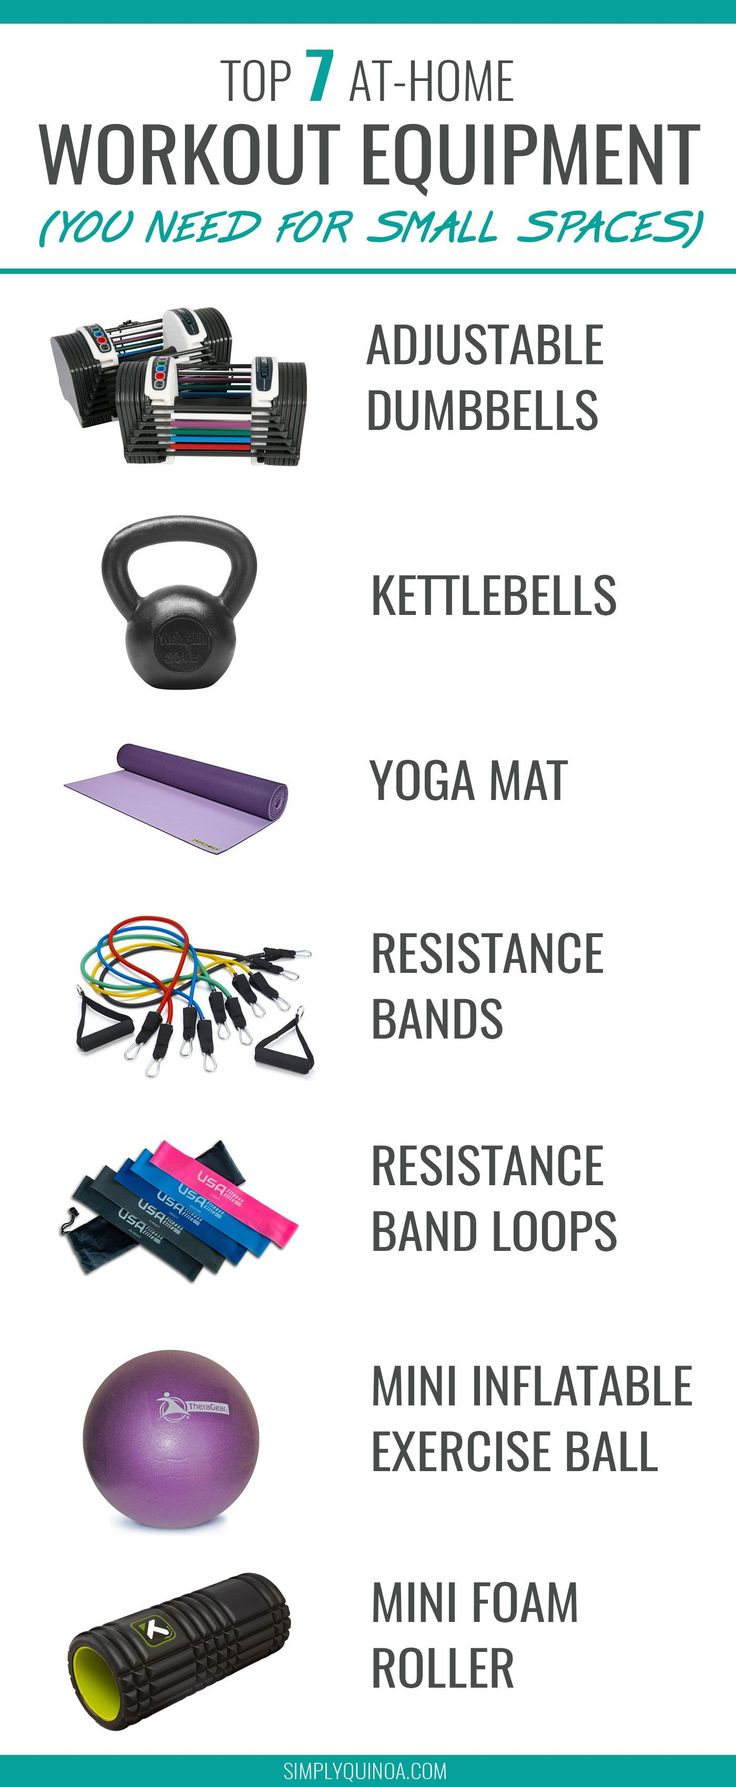 10 Best At Home Exercise Equipment For Small Space…